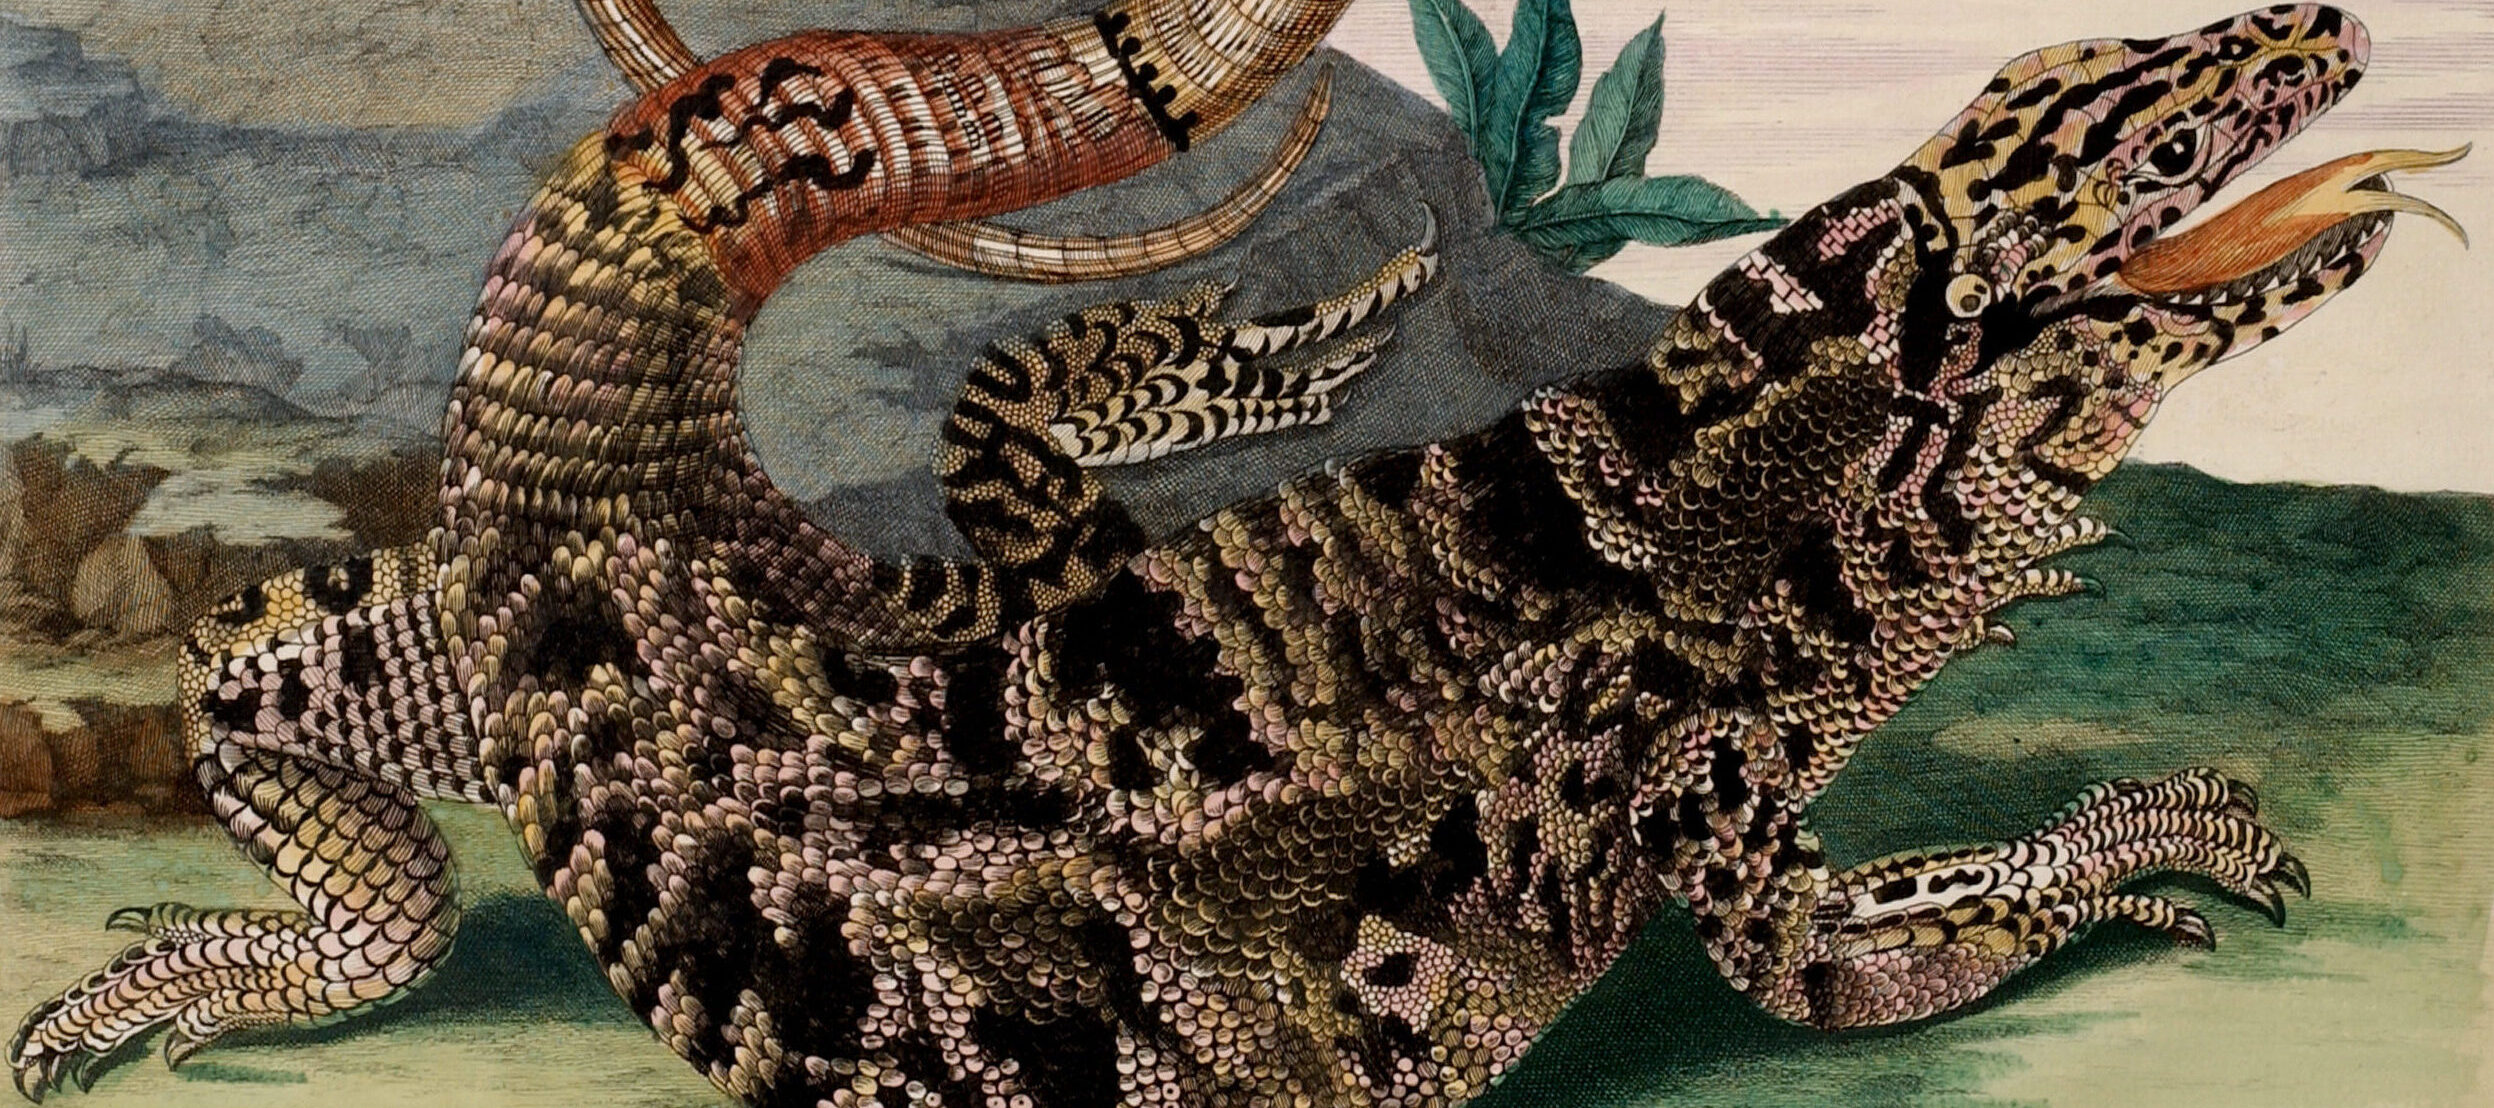 A detailed engraving portrays a large, black and tan lizard in precise detail. Facing right and positioned in front of a gray rock, the reptile extends its red, forked tongue. The reptile curls its lengthy tail into an O-shape suspended decoratively above its scaly torso.